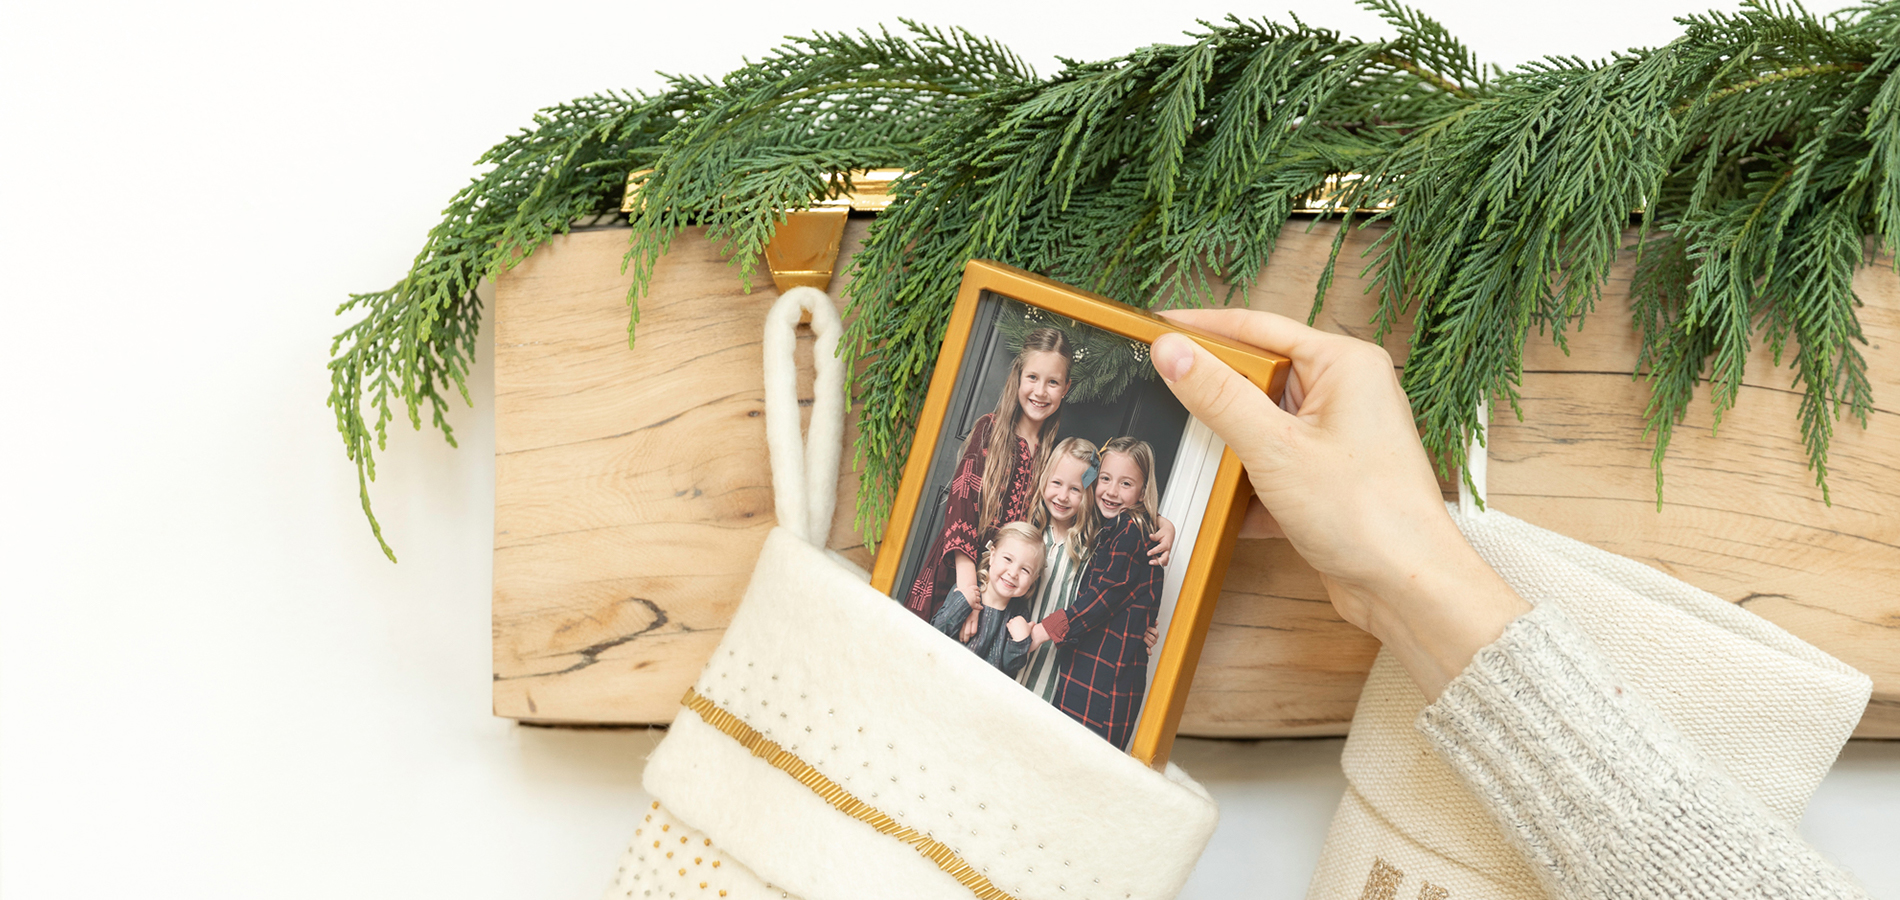 Hand placing small framed photo inside of stocking